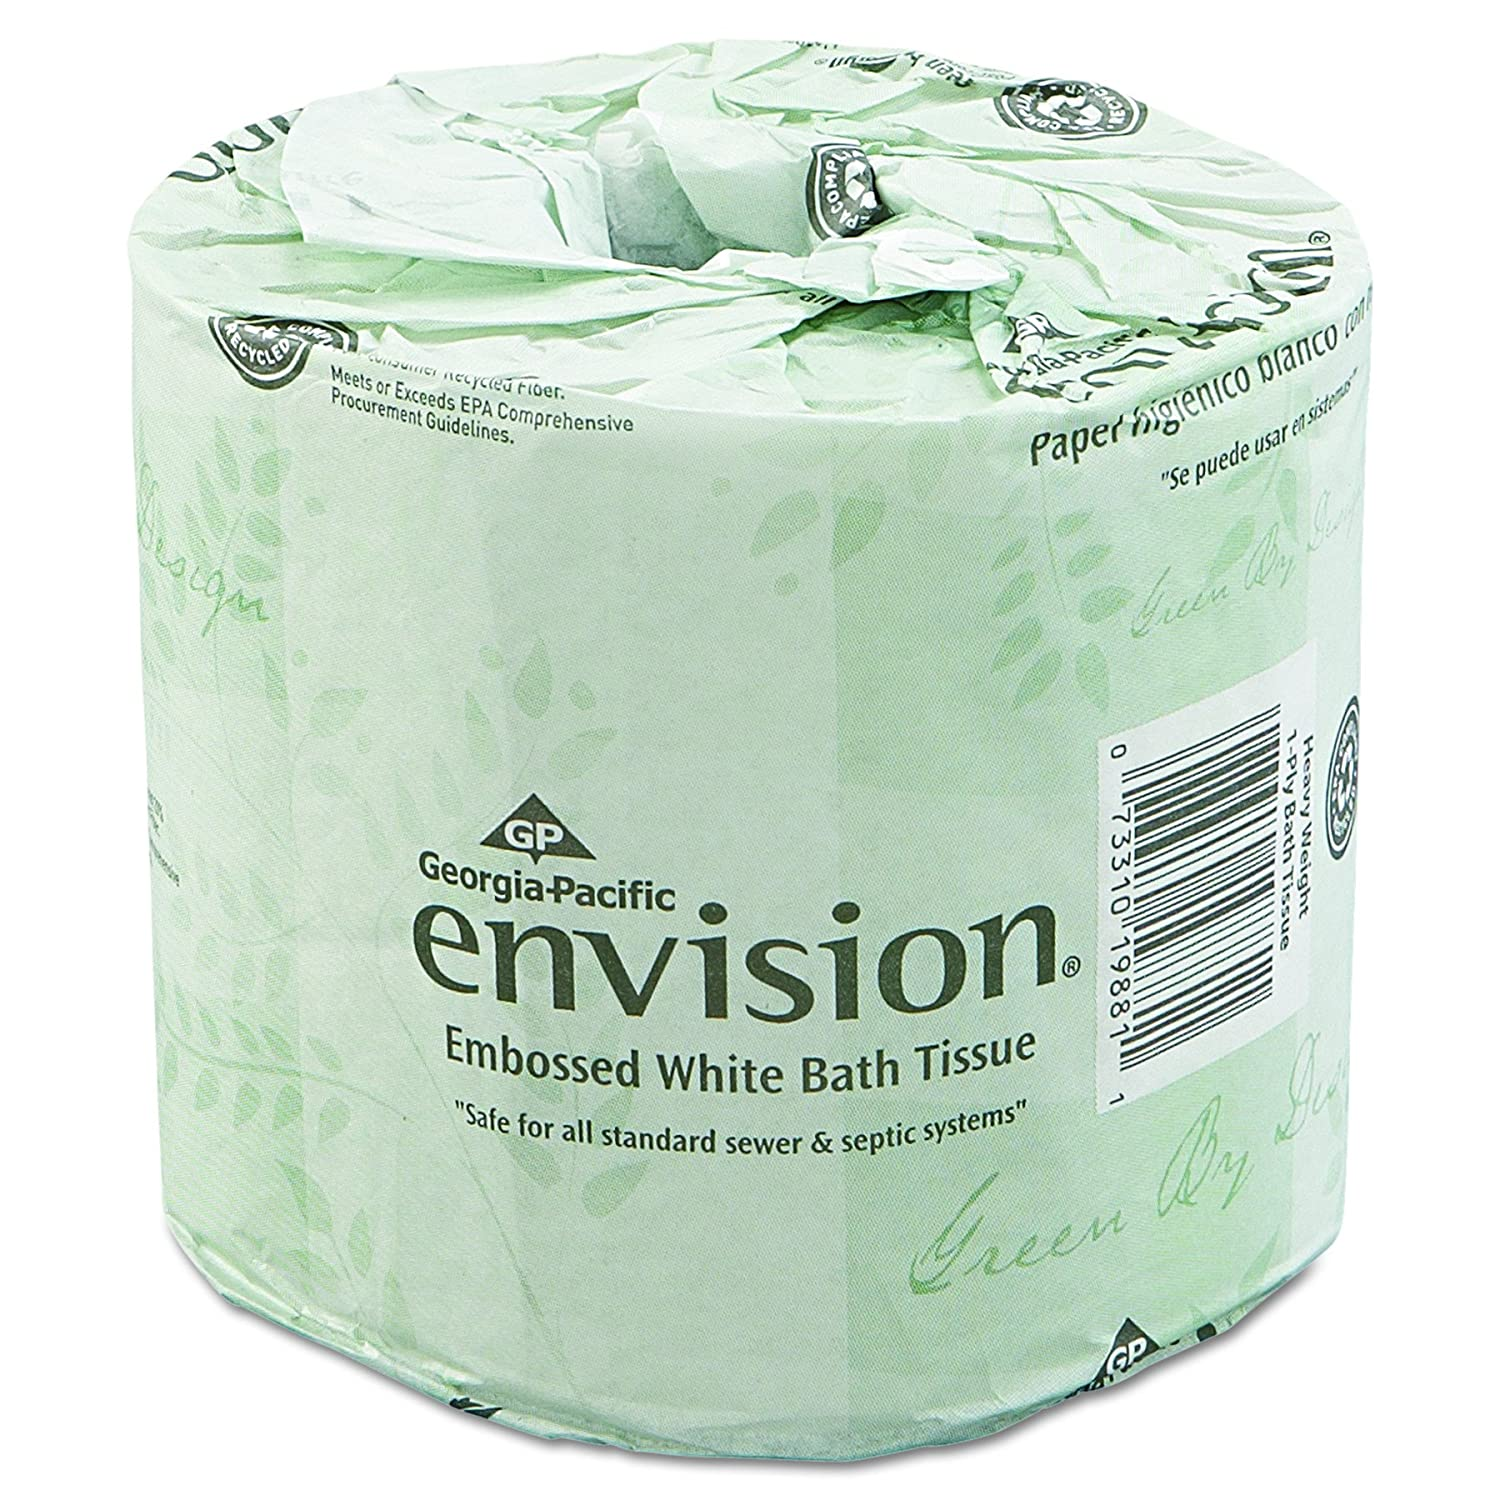 Envision 2-Ply Embossed Toilet Paper by GP PRO (Georgia-Pacific), 19880/01, 550 Sheets Per Roll, 80 Rolls Per Case